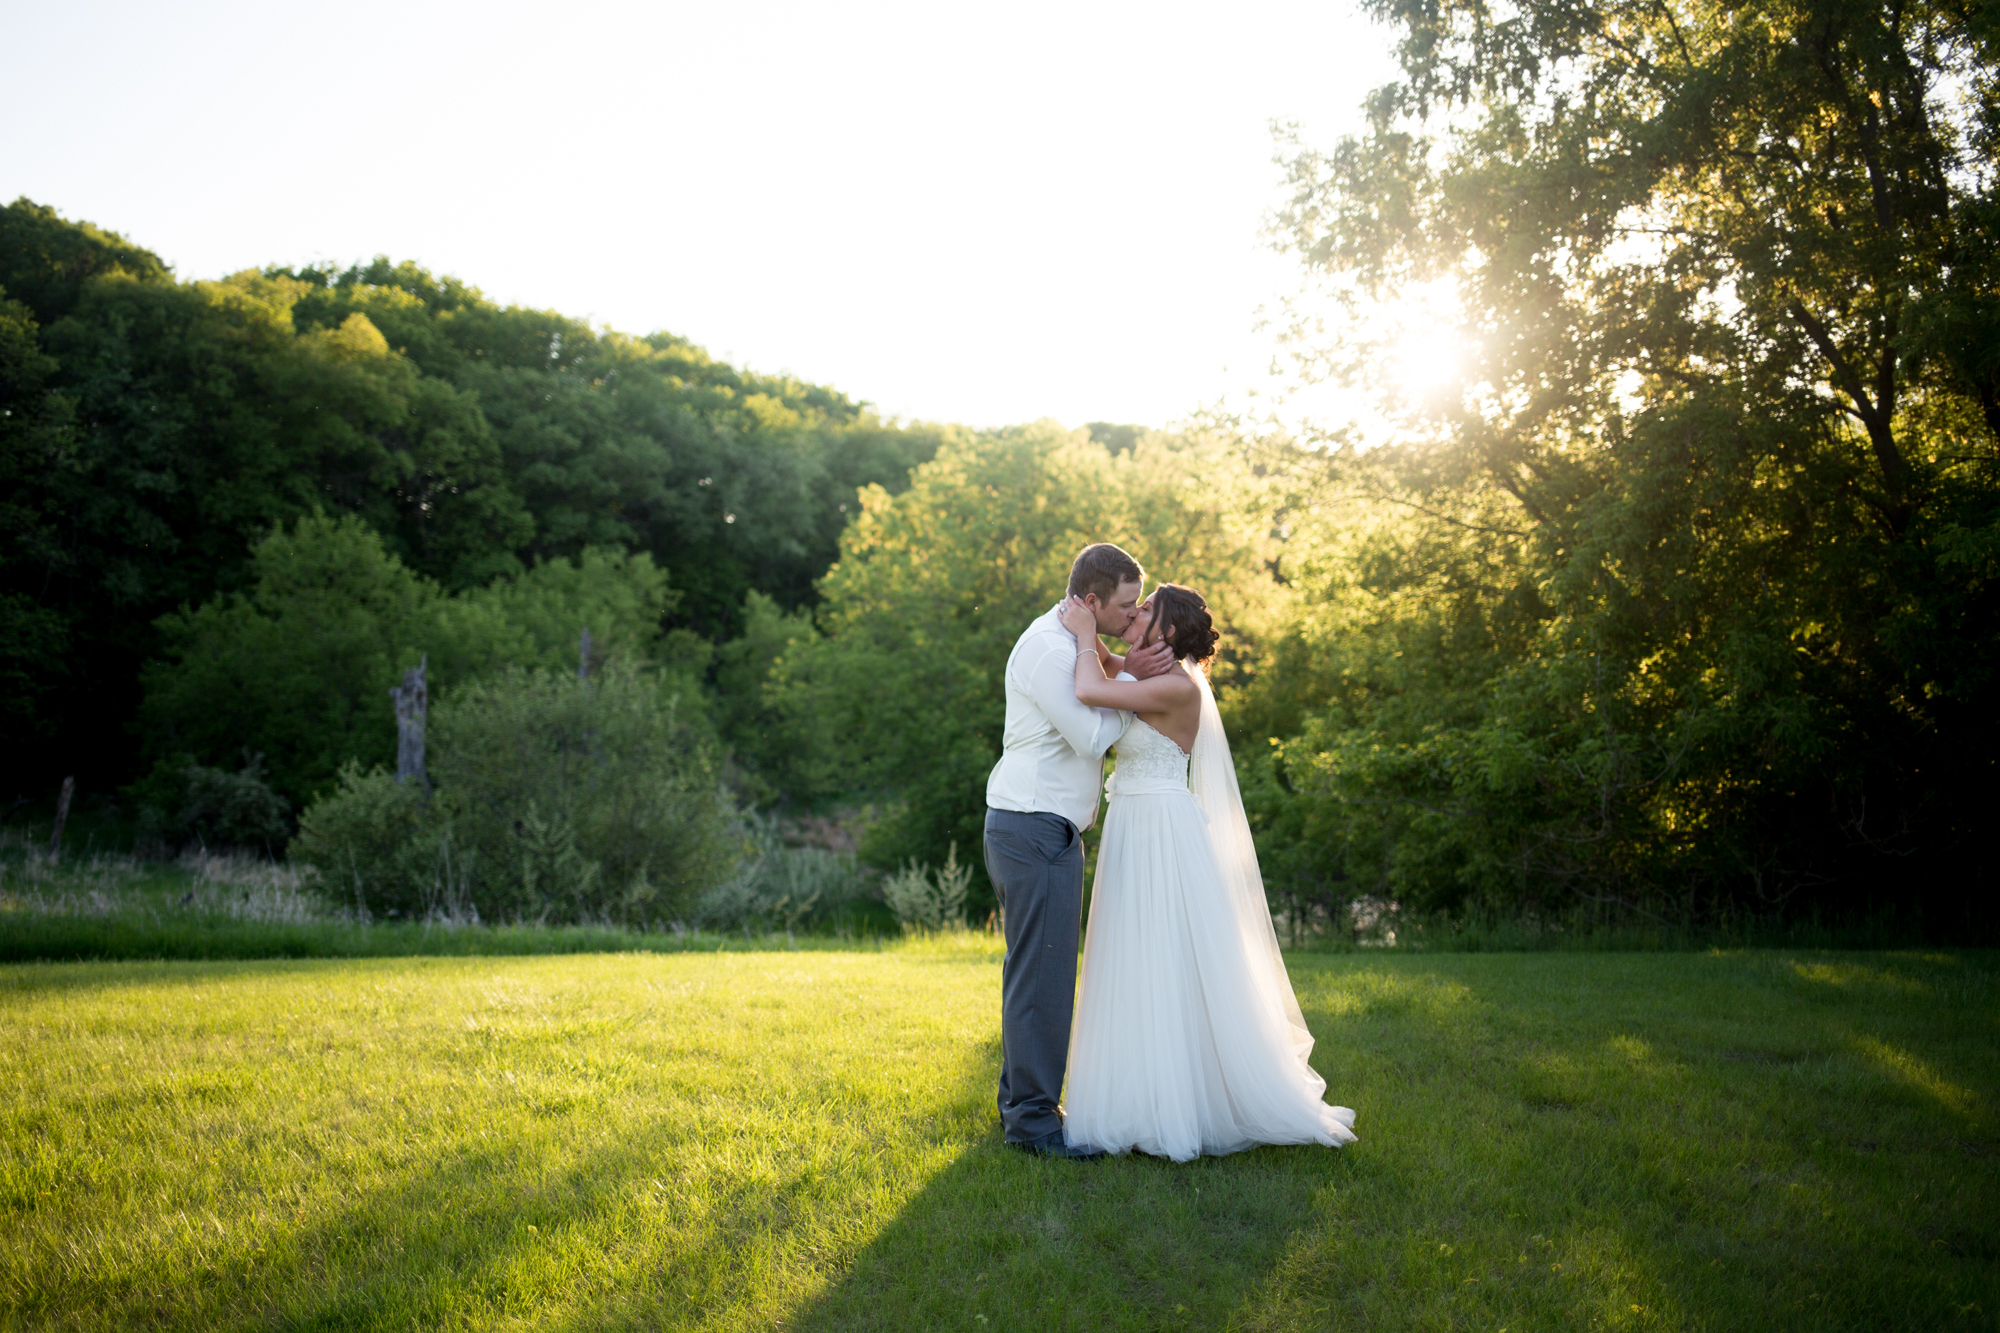 Royal Ridges Conference Center Wedding in Ripon, Wisconsin - Whit Meza Photography